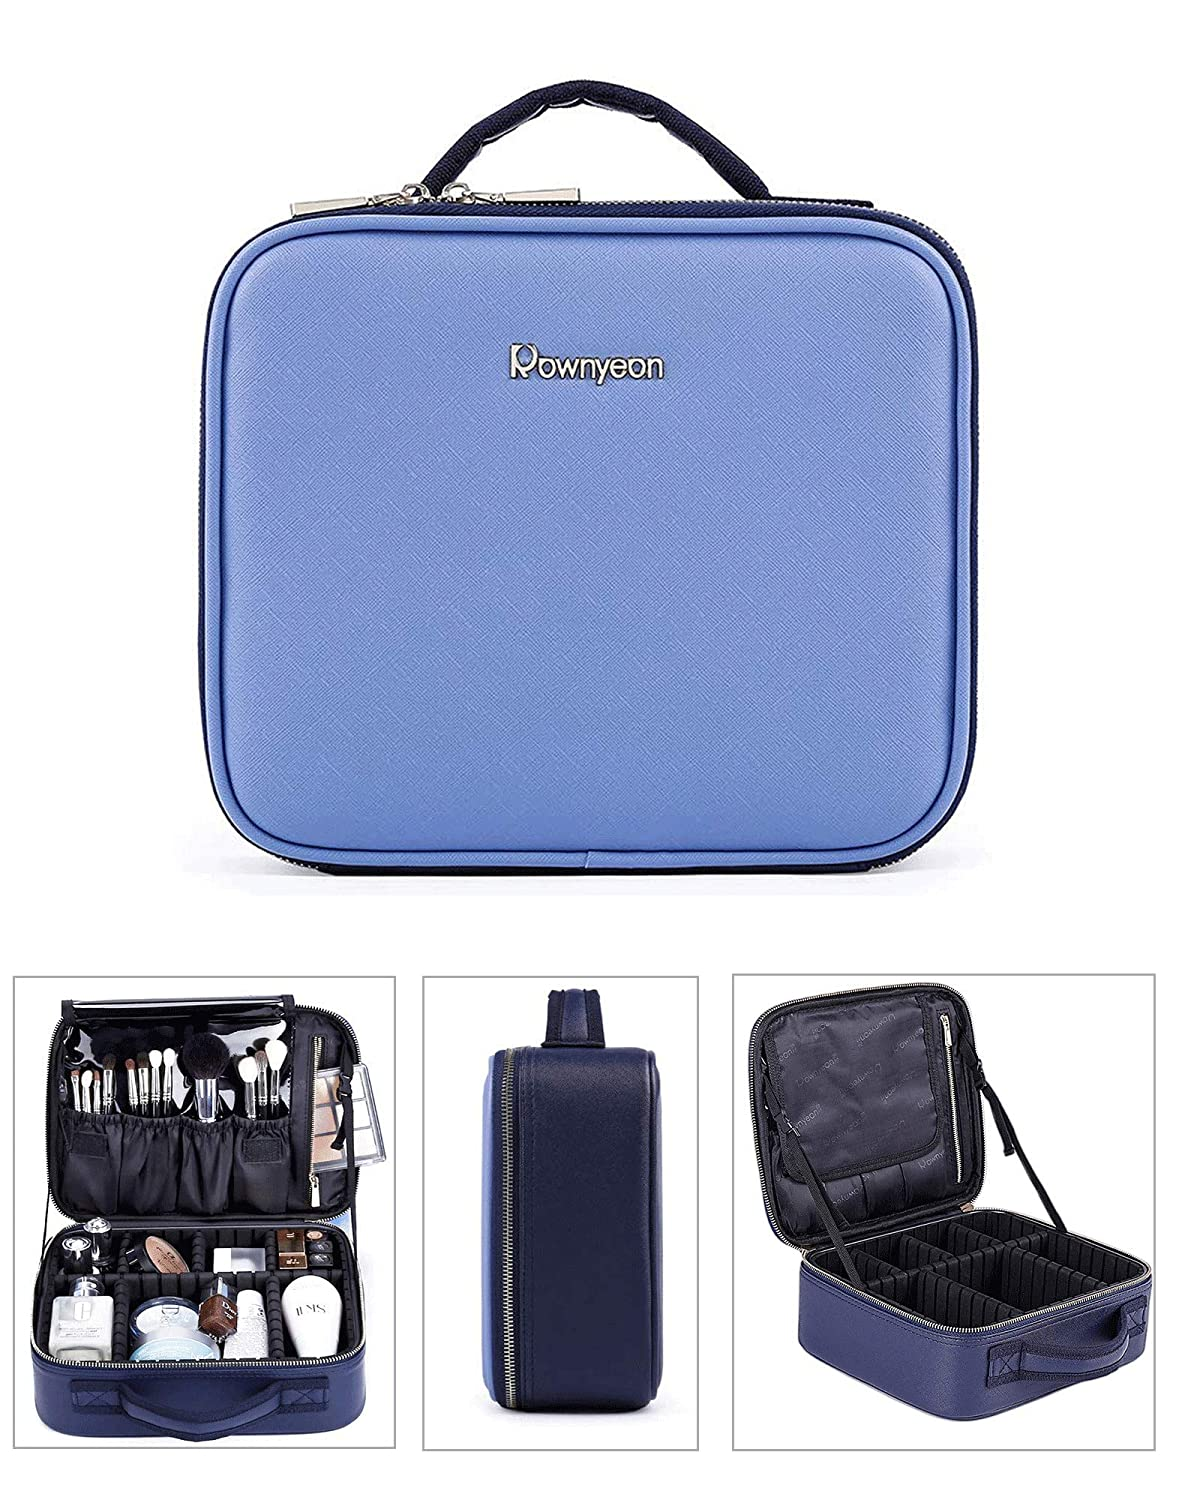 Rownyeon Makeup Train Cases Professional Travel Makeup Bag Cosmetic Cases Organizer Portable Storage Bag(10 inch) for Cosmetics Makeup Brushes Toiletry Jewelry Digital Accessories(Blue)